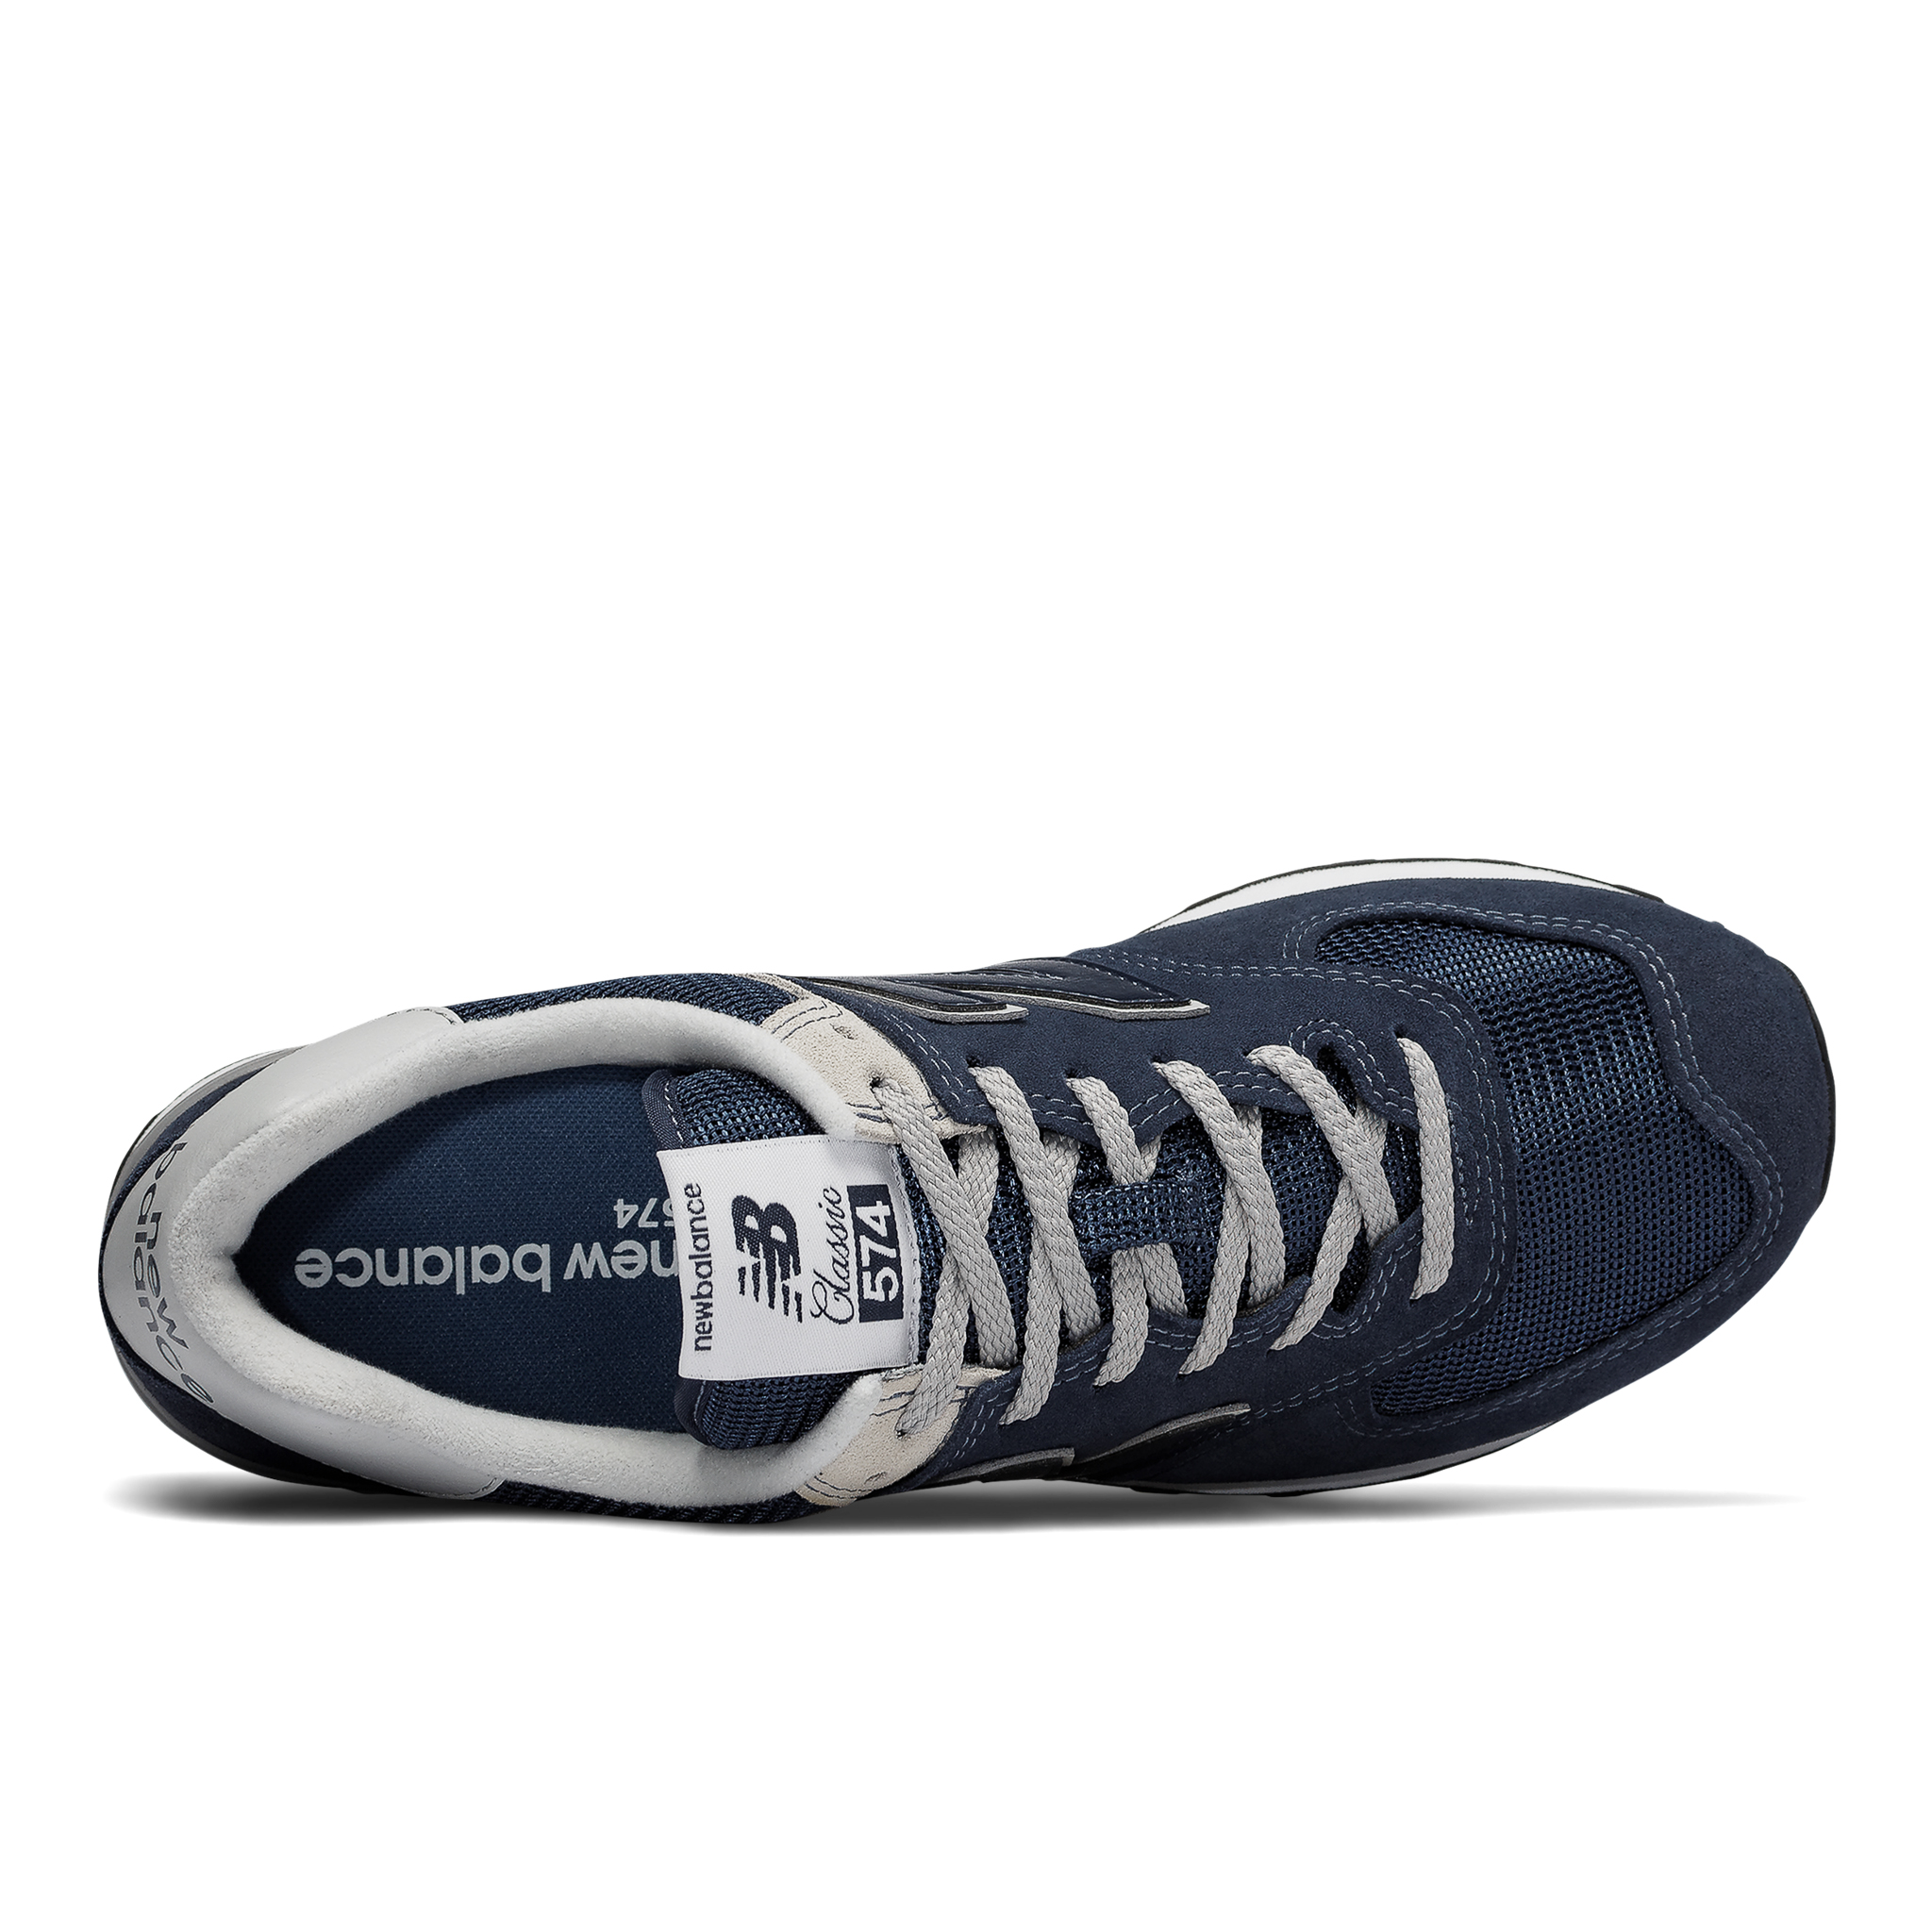 New Balance 574 sneakers, blue, 44